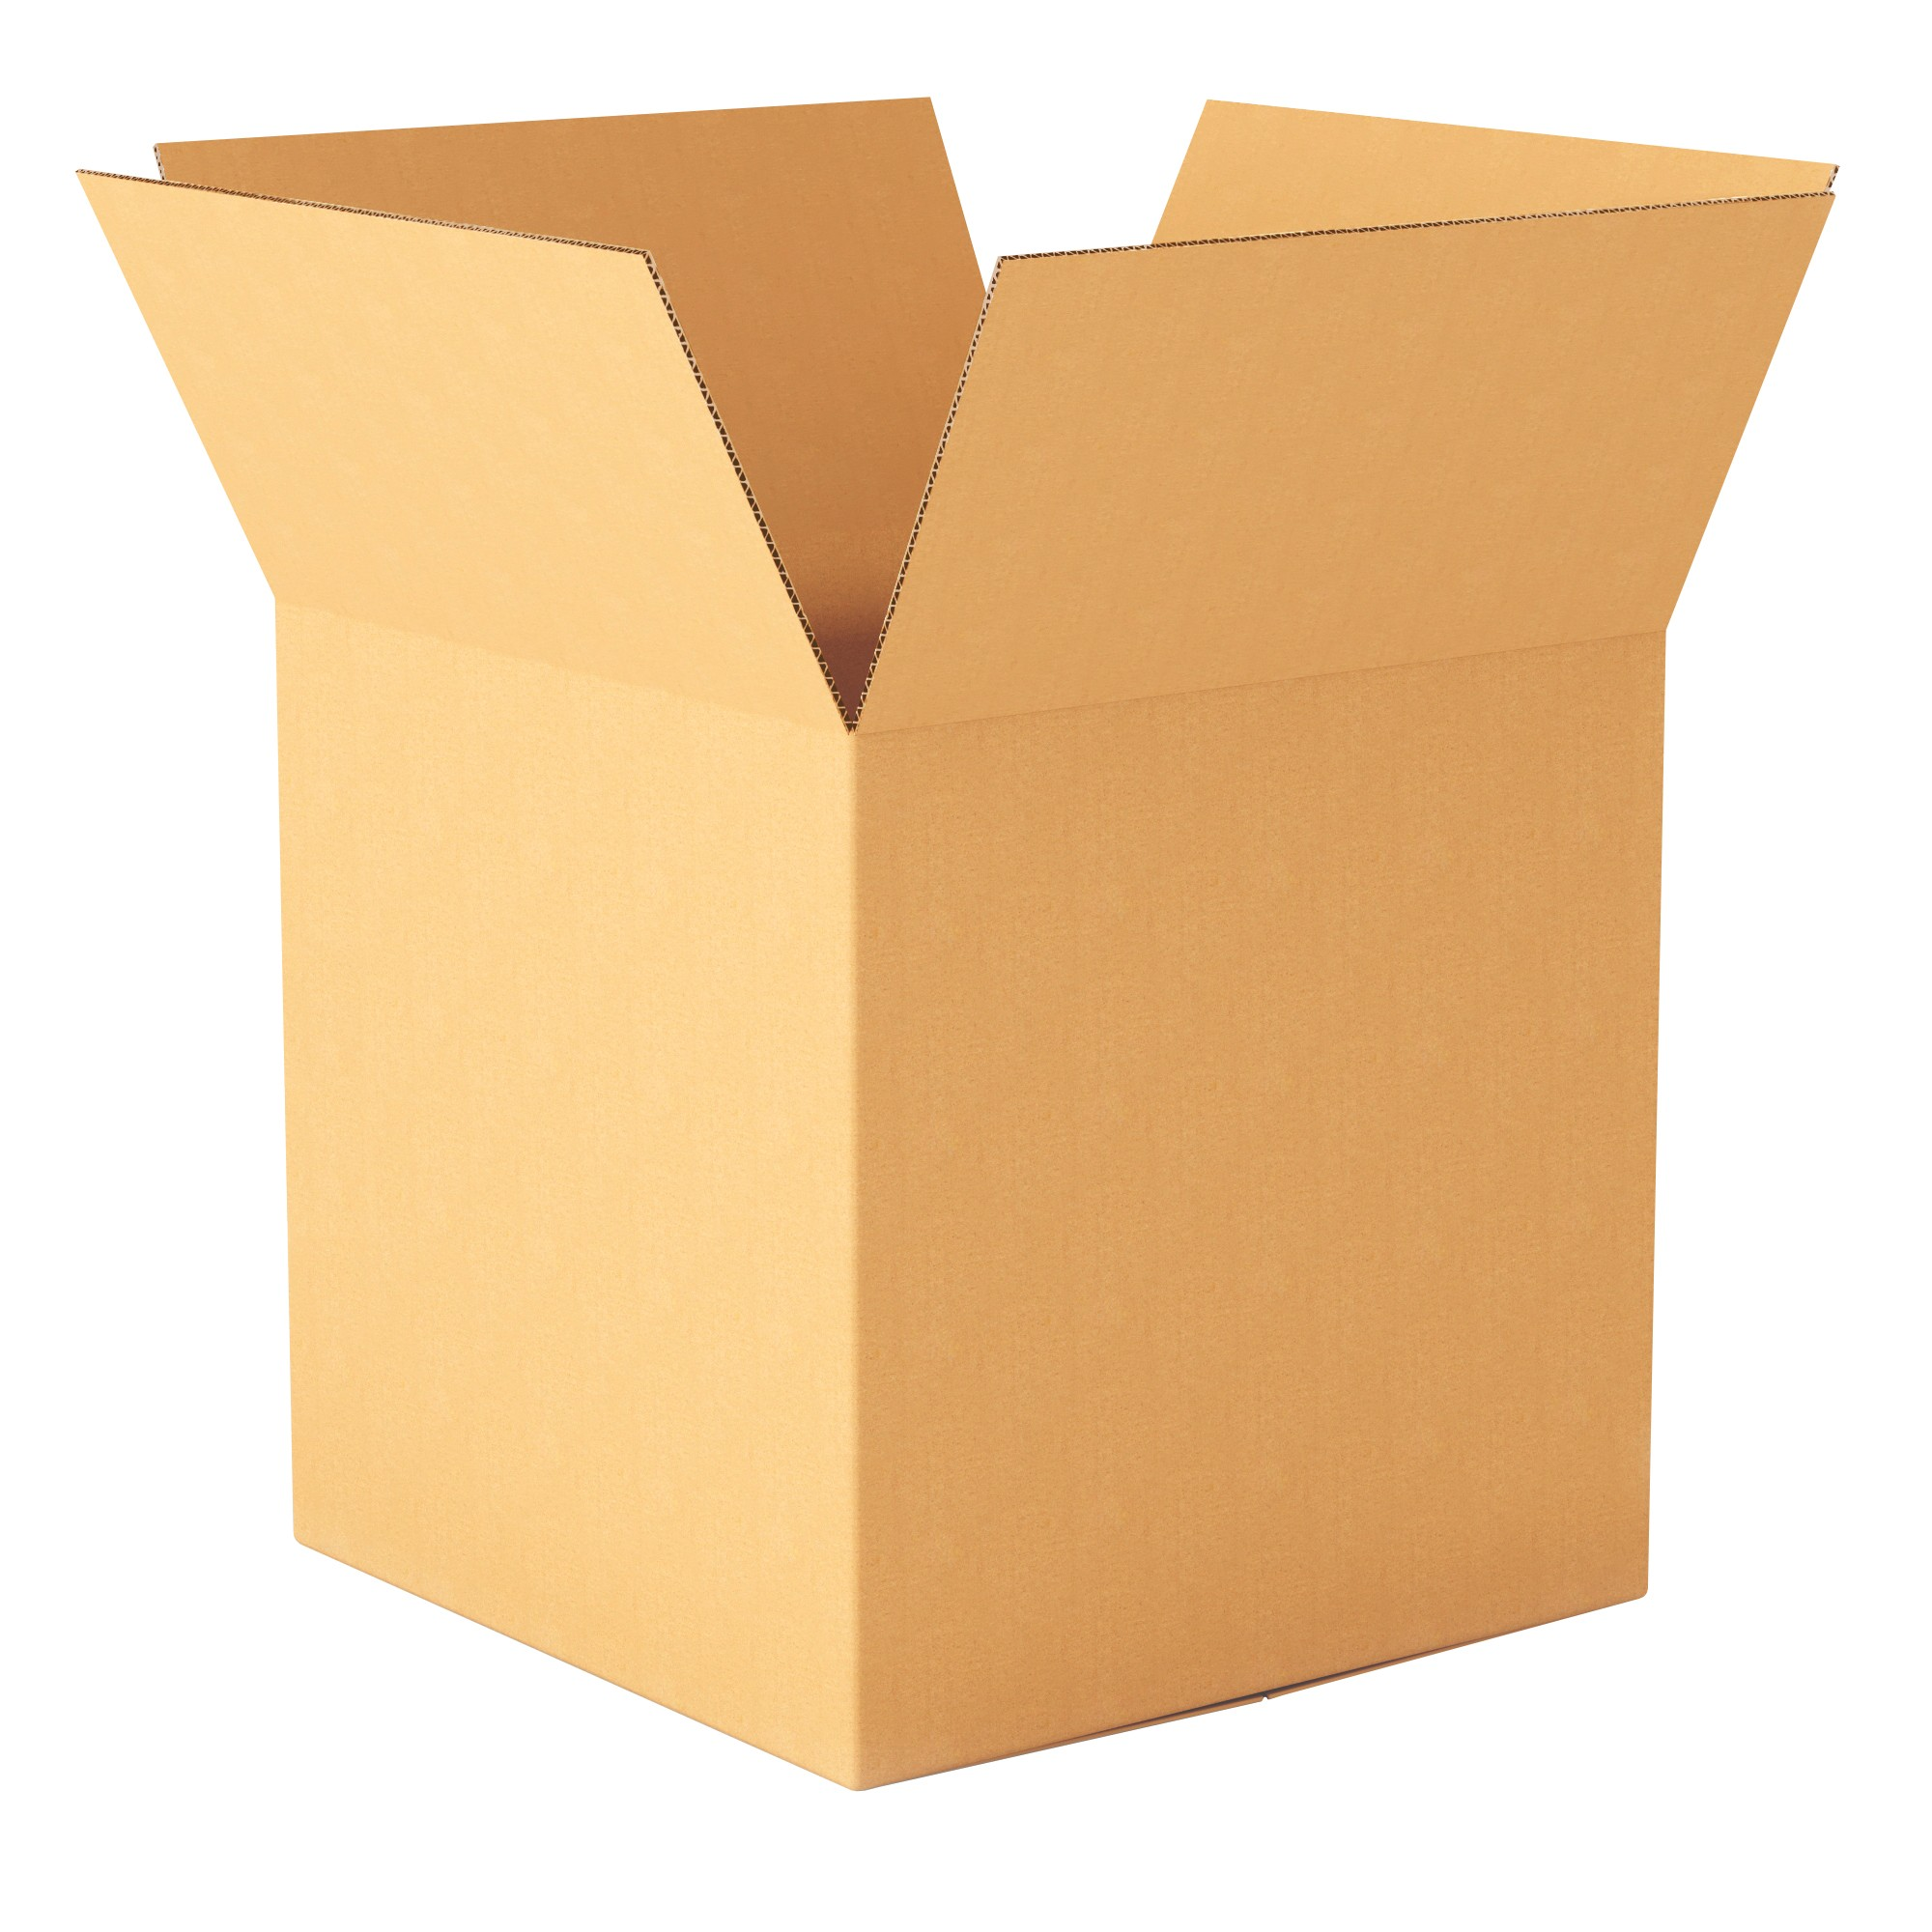 "TOTALPACK® 12 x 12 x 12"" Single Wall Corrugated Boxes 25 Units"